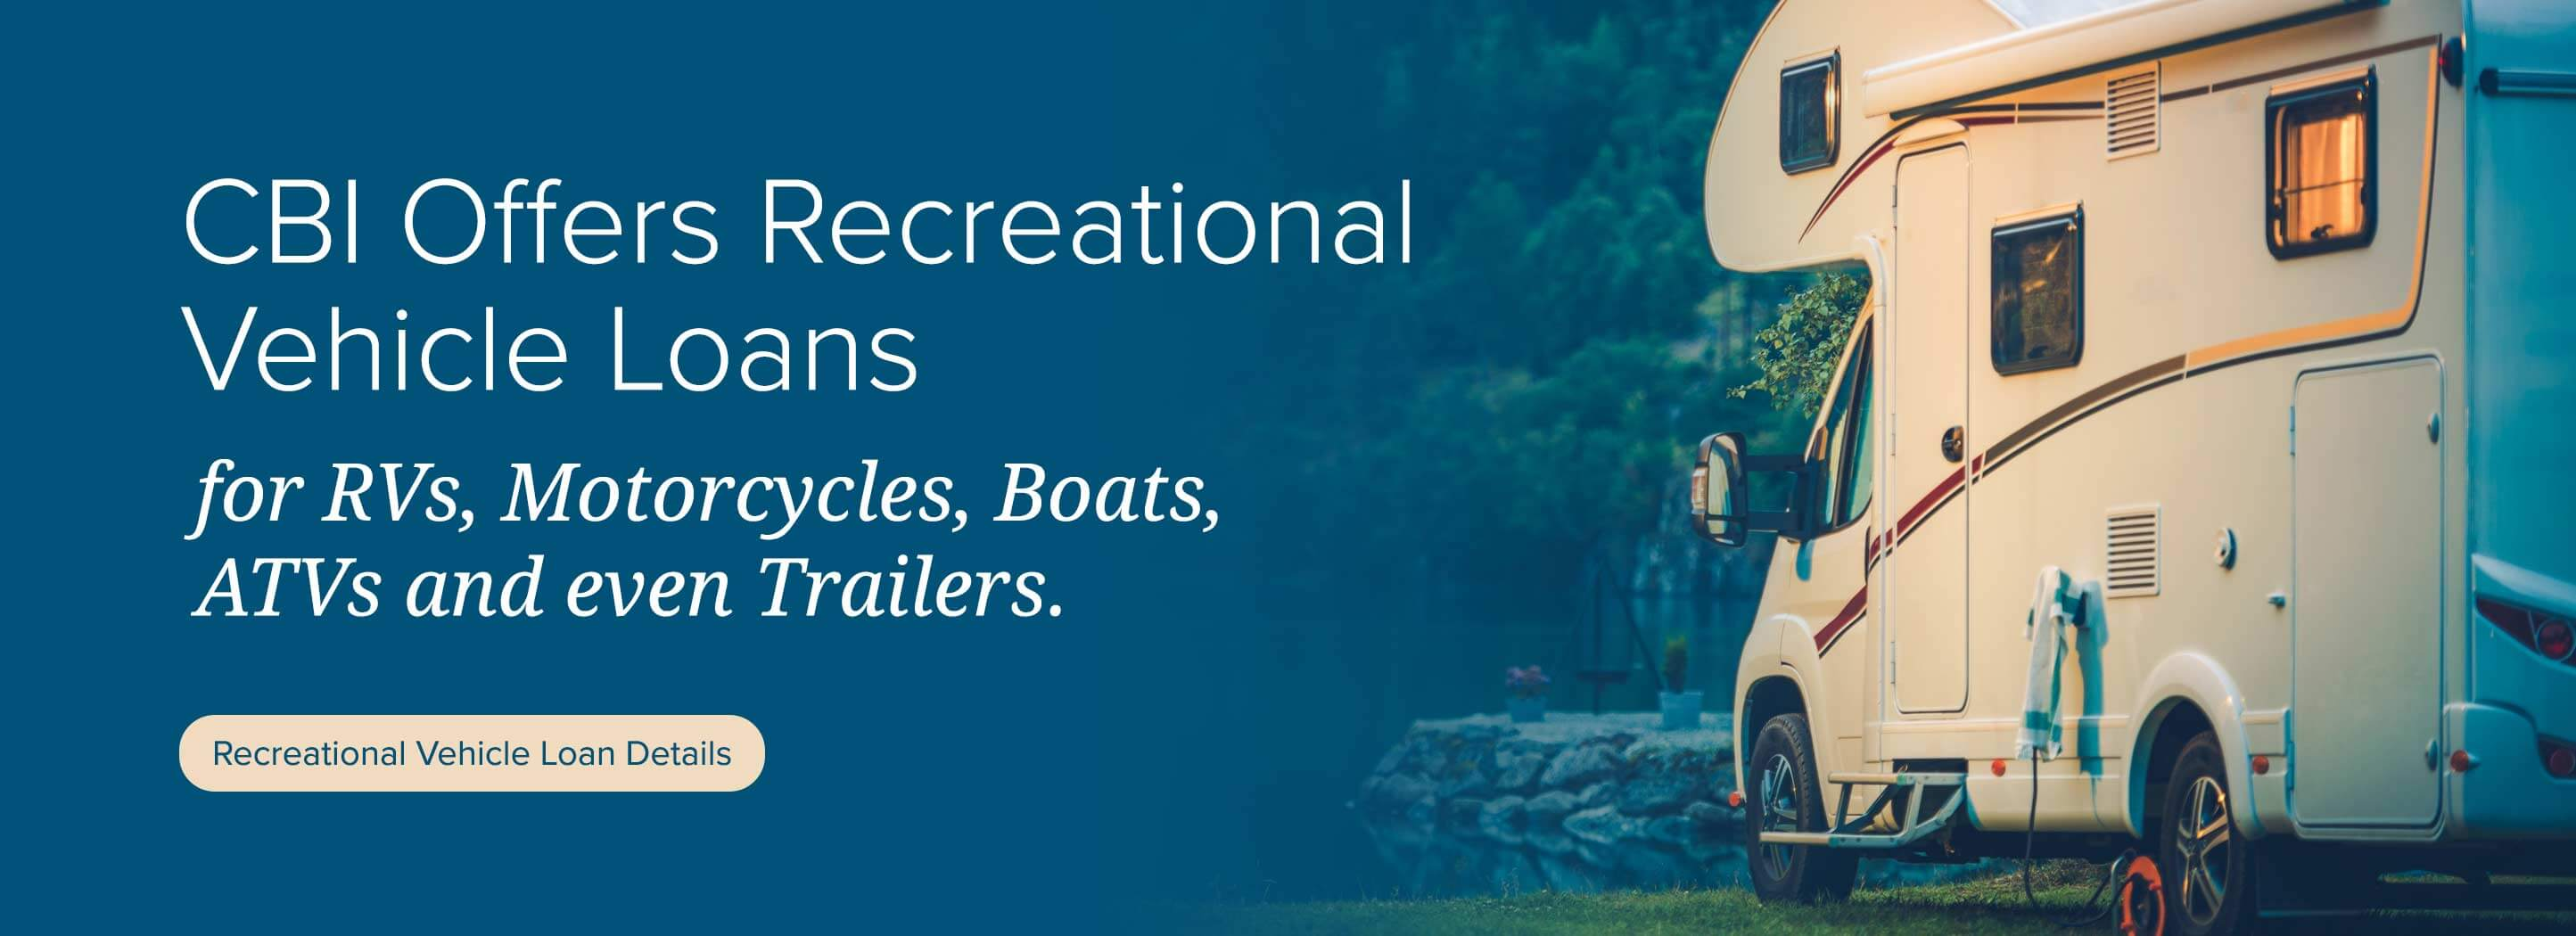 CBI Offers Recreational Vehicle Loans for RVs, Motorcycles, Boats, ATVs and even Trailers. Recreational Vehicle Loan Details